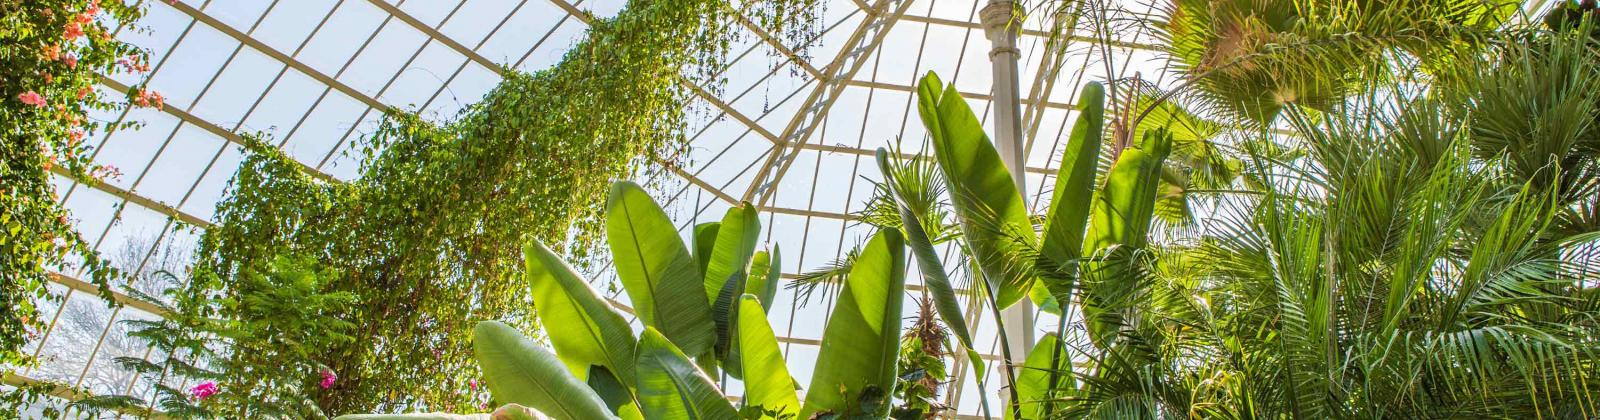 Leafy green plants in a glass conservatory.